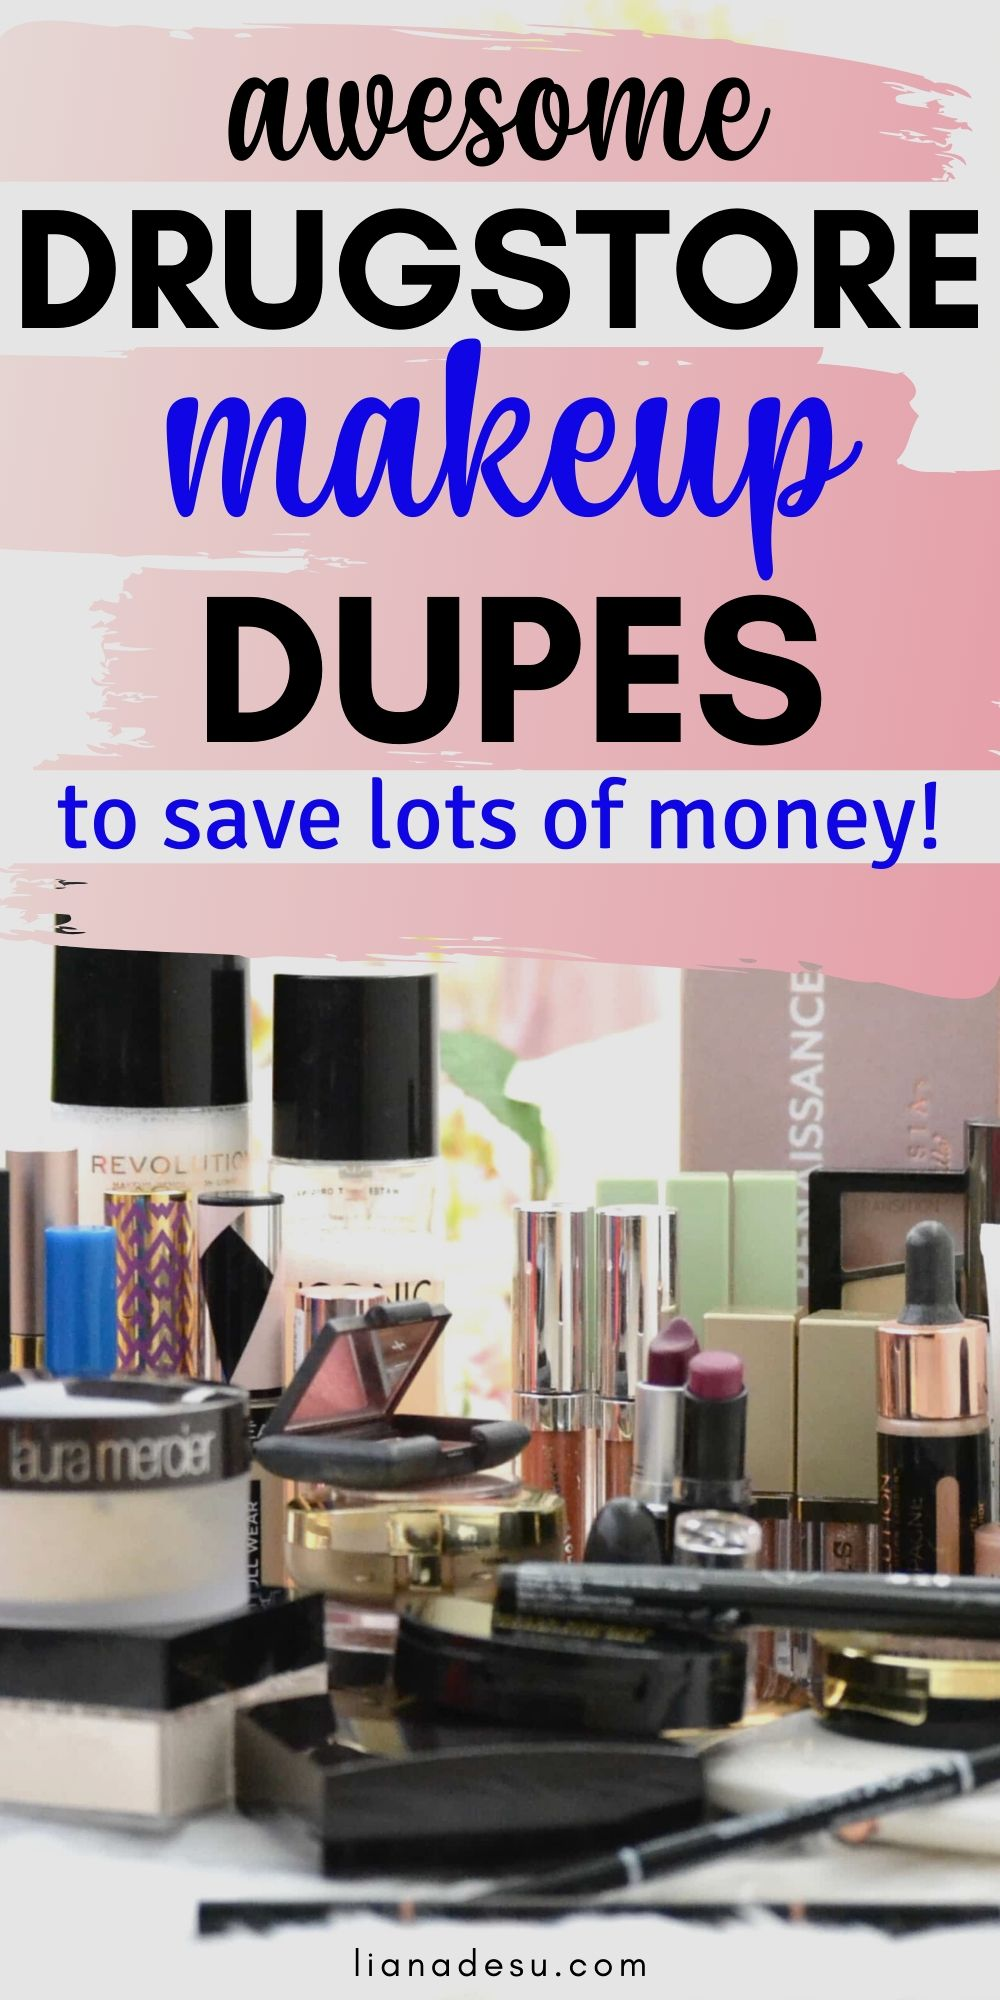 Pin by Grantaiik on Beauty in 2020 Drugstore makeup